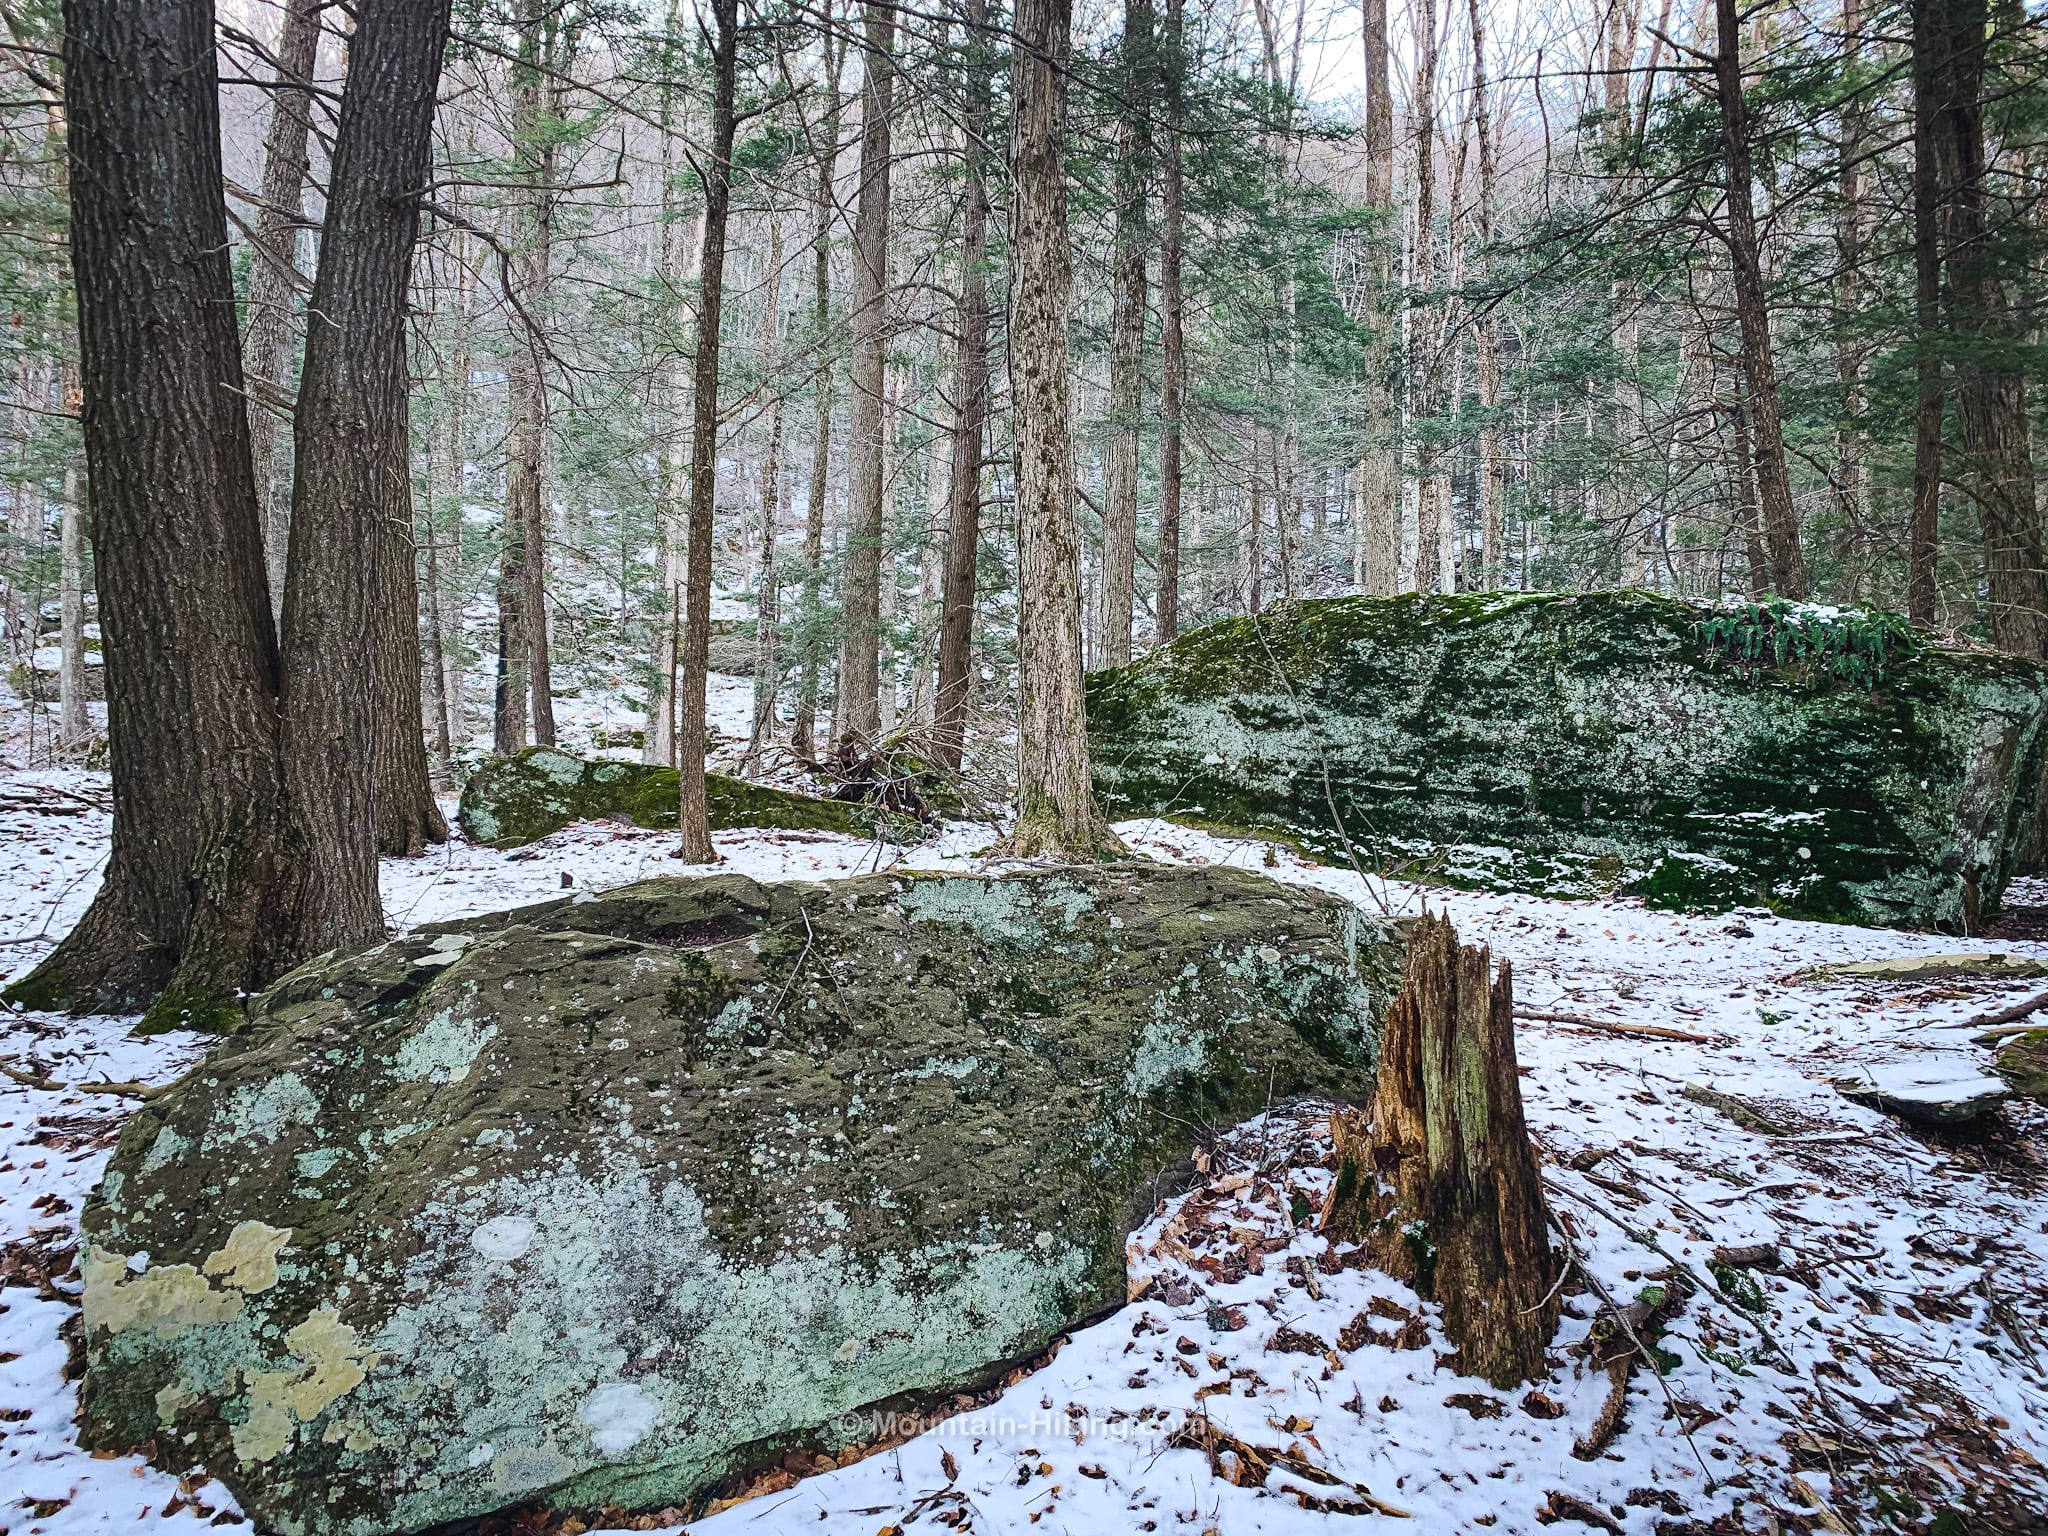 glacial erratics covered in snow